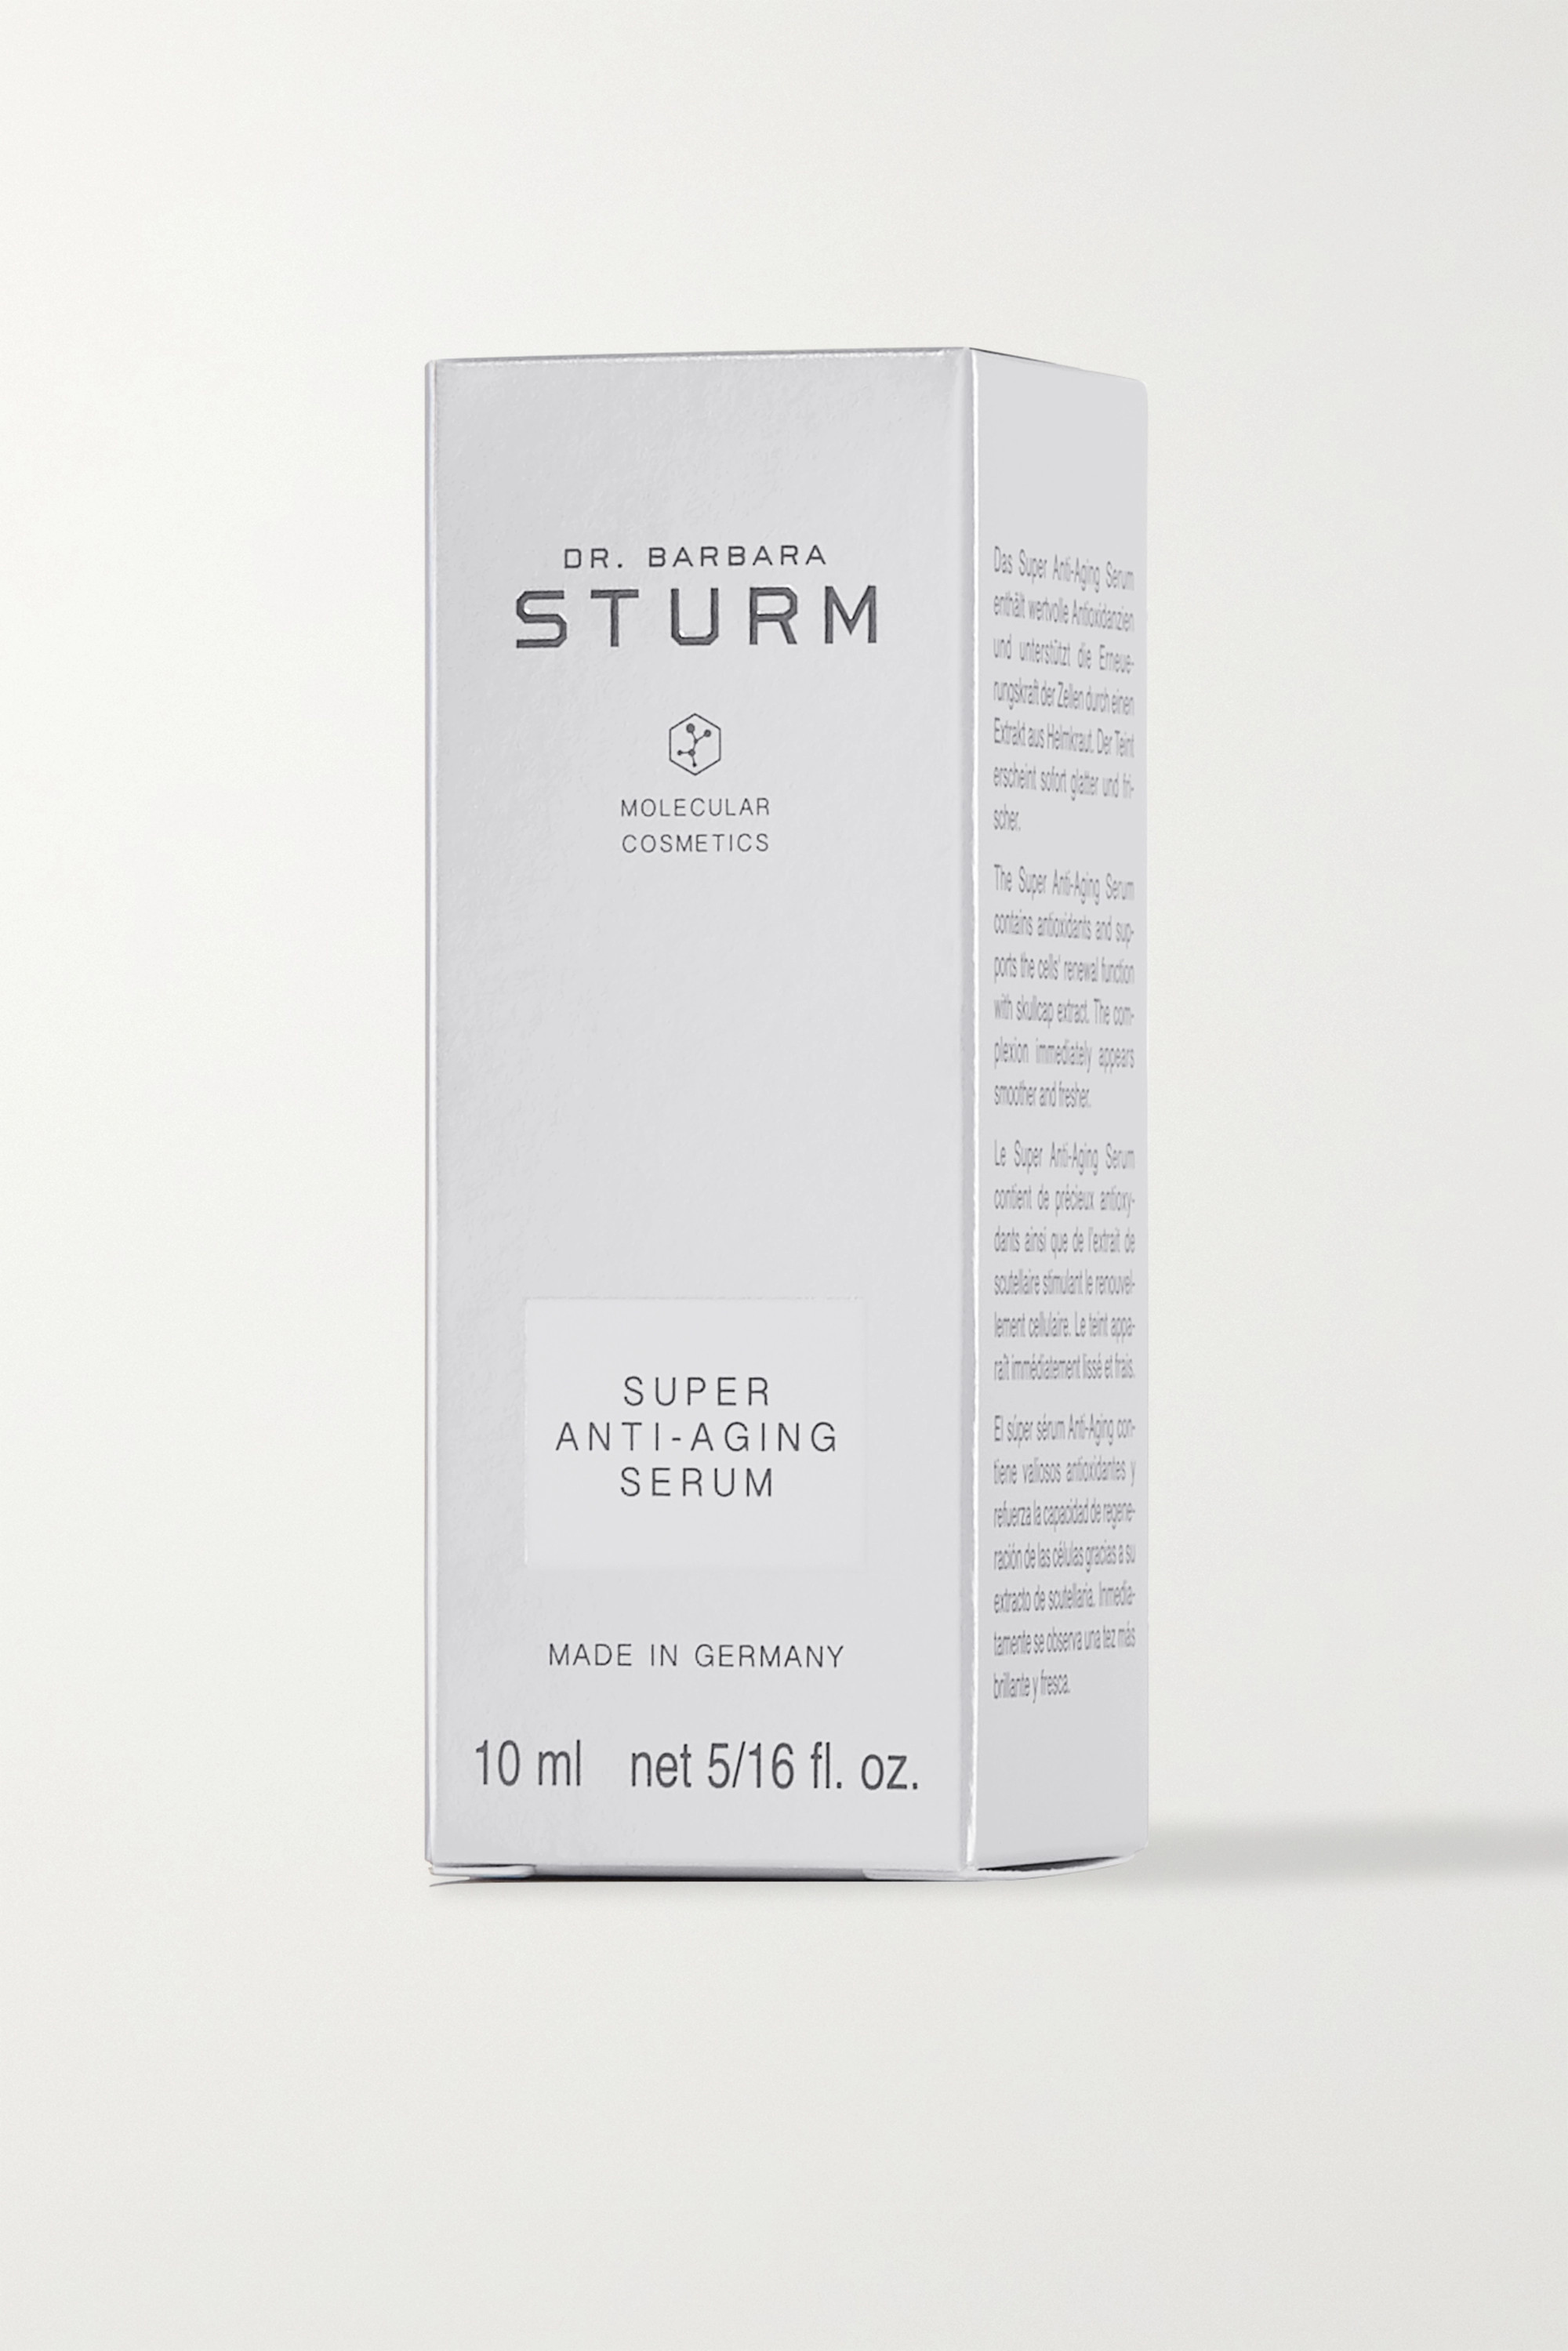 Dr. Barbara Sturm Mini Super Anti-Aging Serum, 10ml